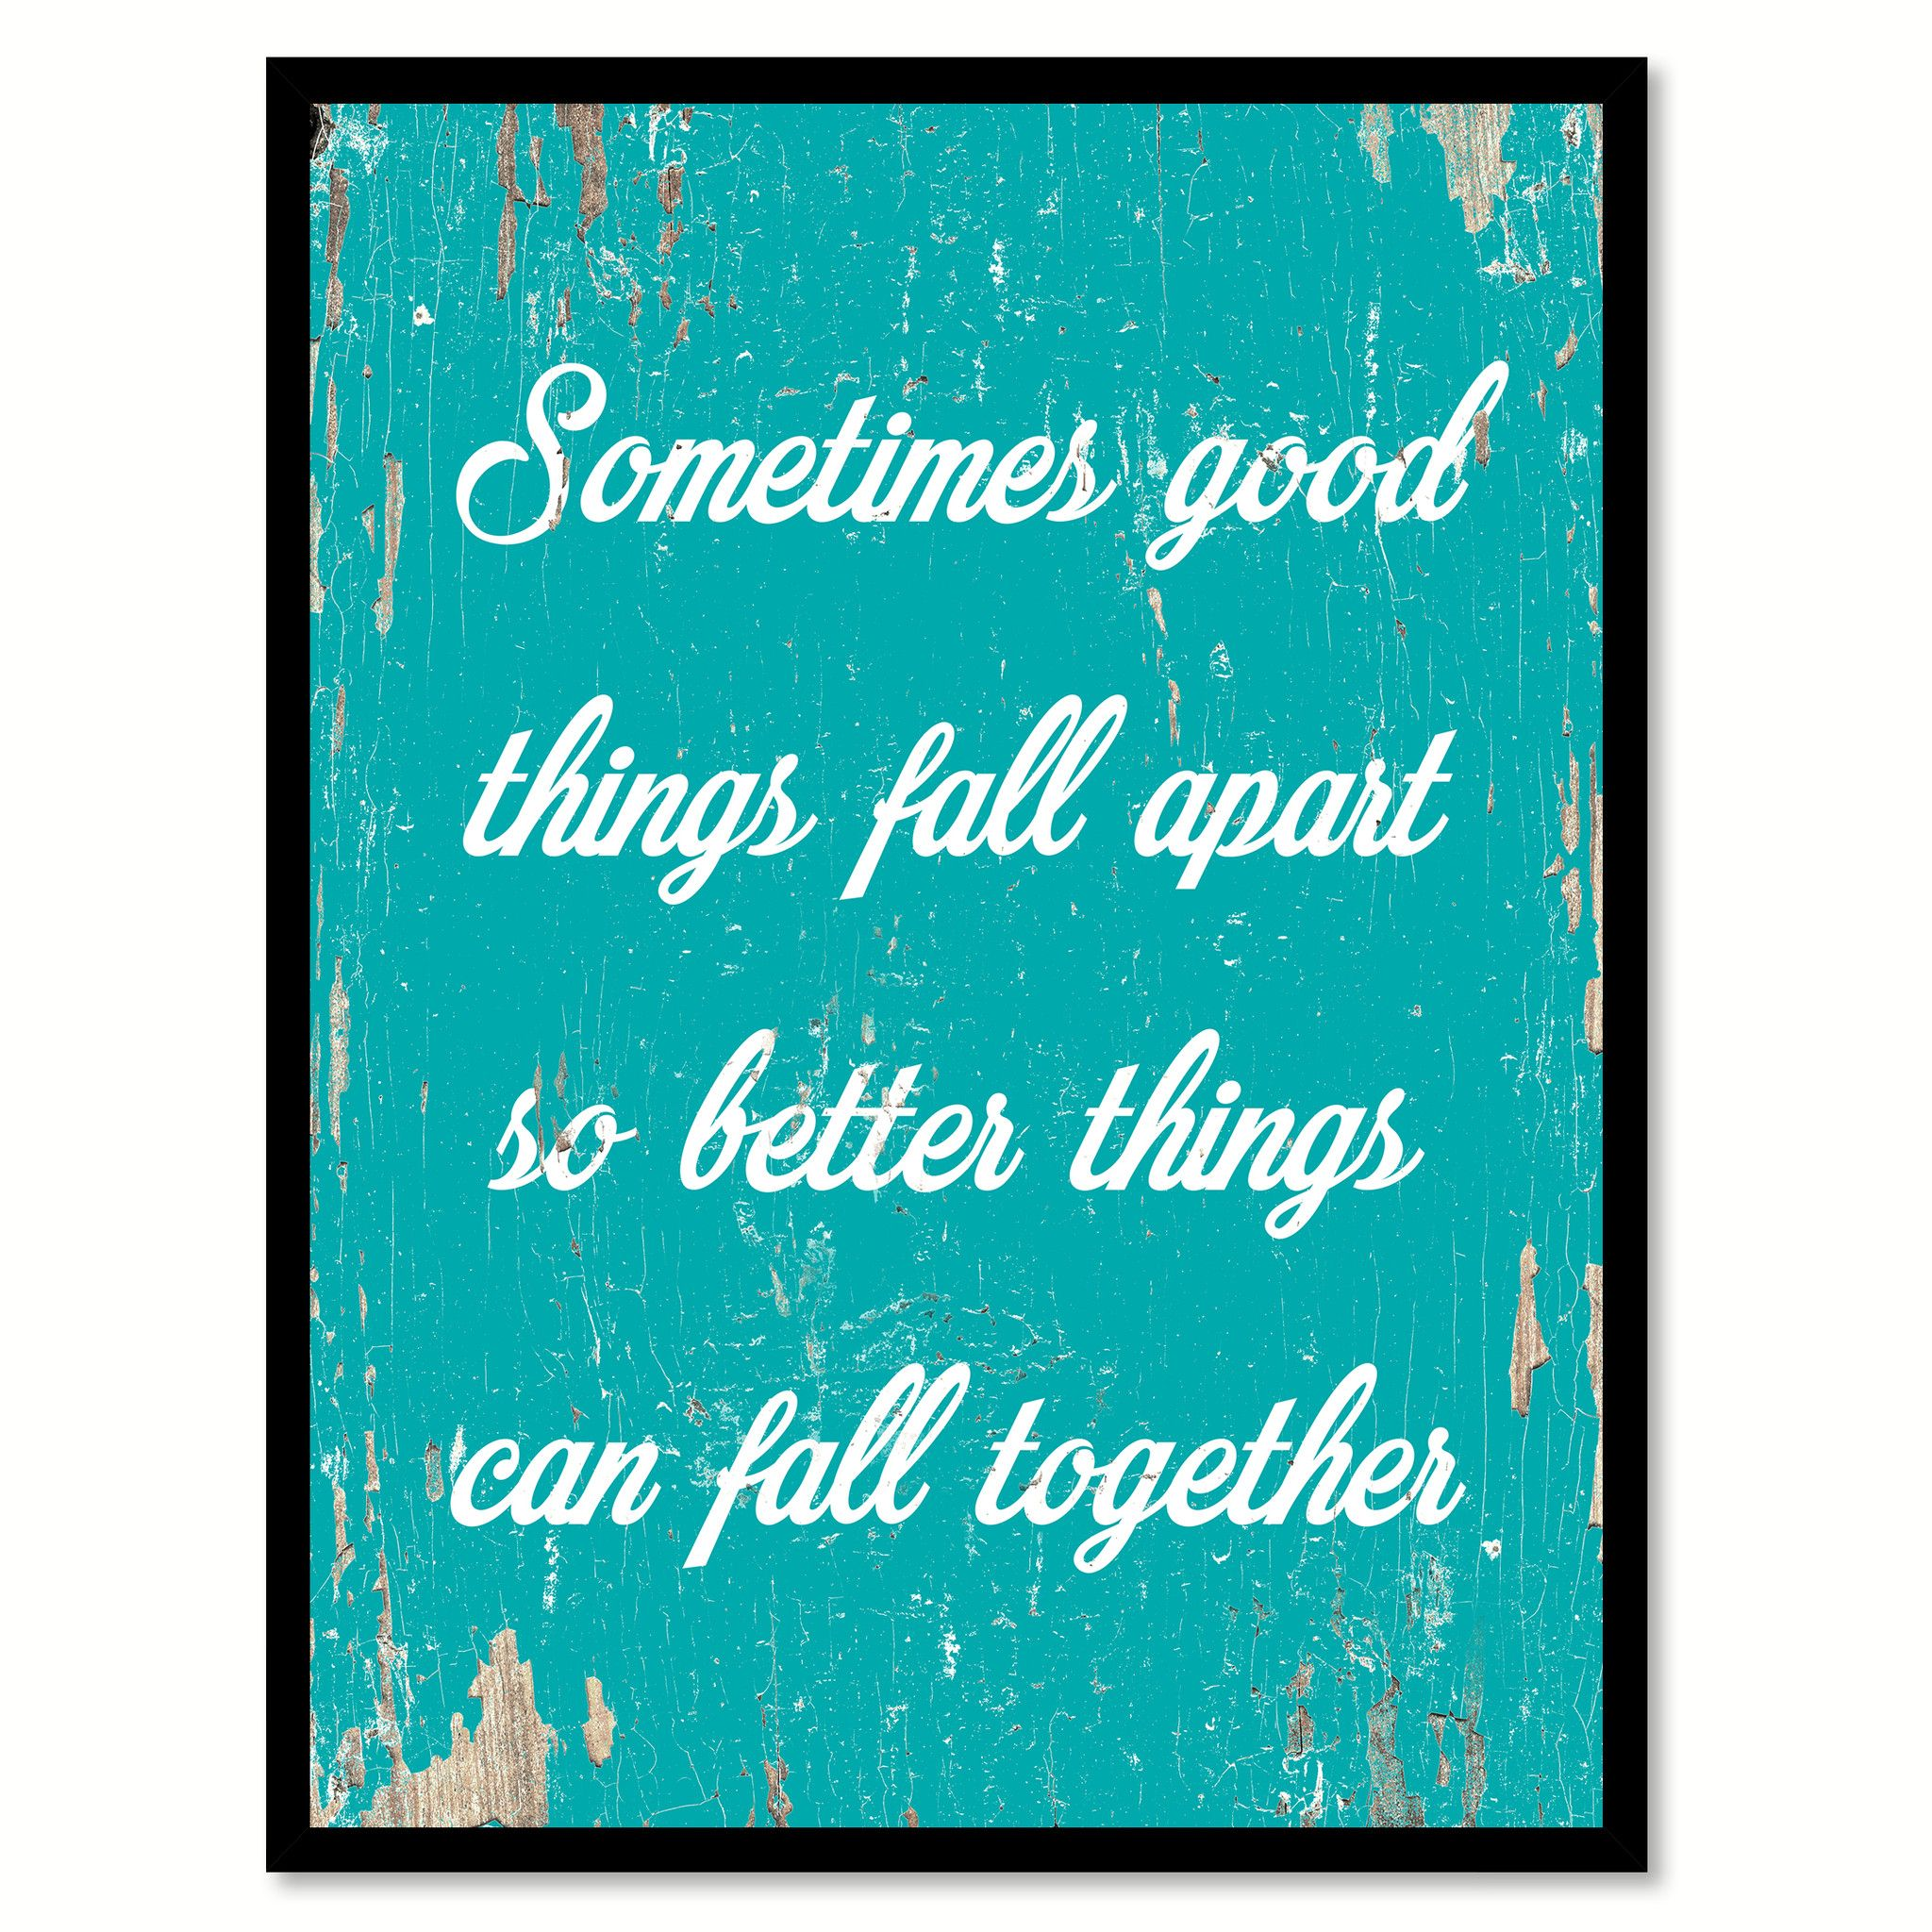 Sometimes Good Things Fall Apart Saying Canvas Print With Picture Frame Home Decor Wall Art Gifts In 2020 Wall Prints Quotes Wall Art Gift Inspirational Signs